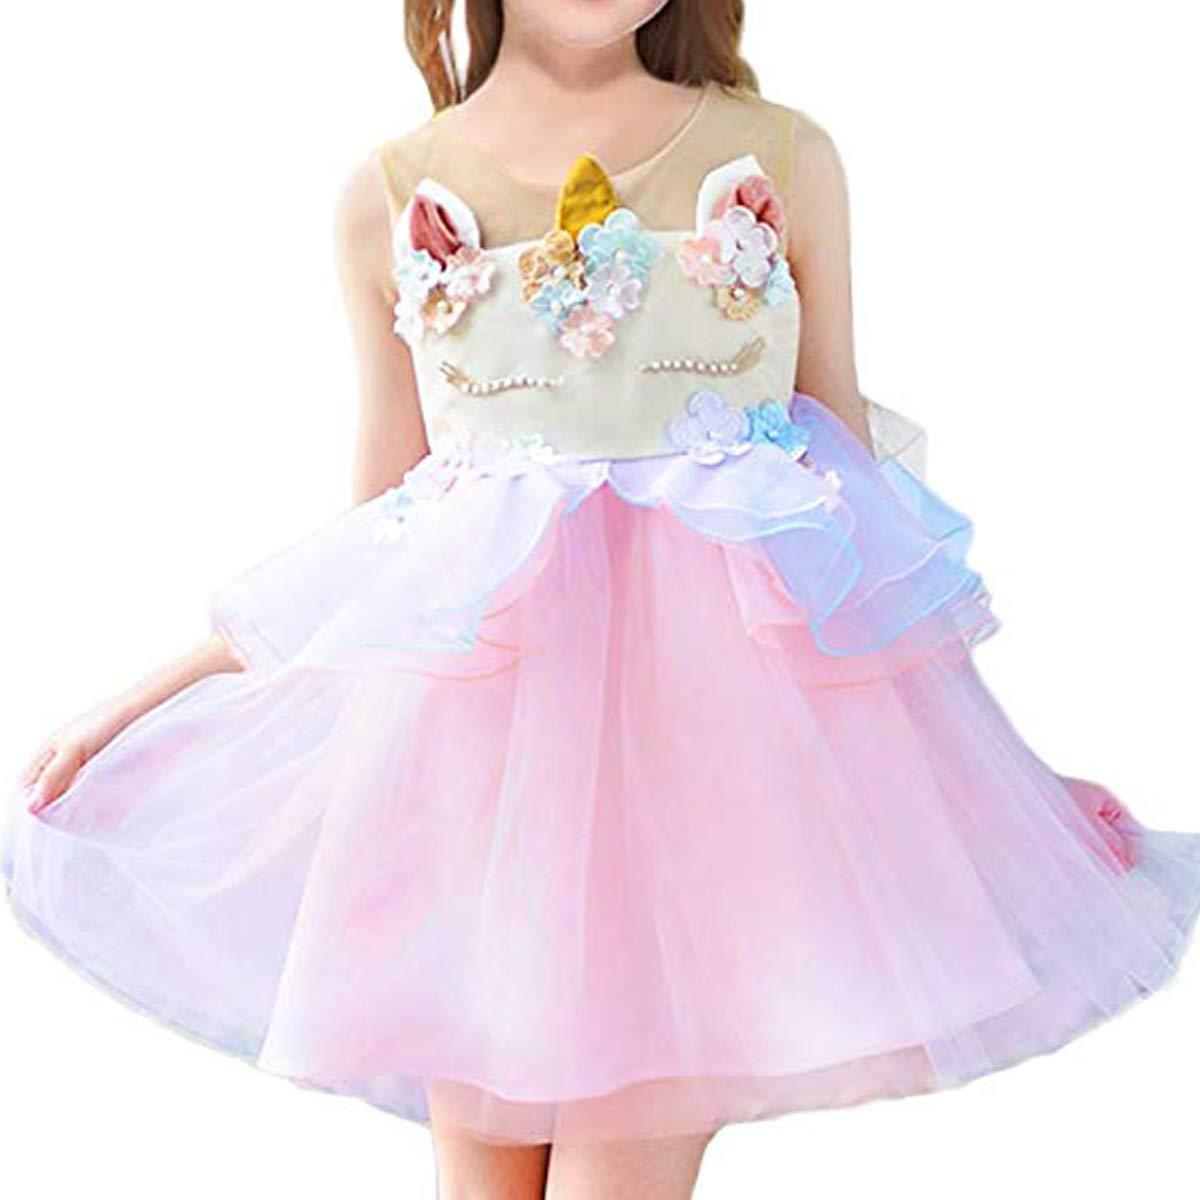 CQDY Unicorn Costume Dress Layered Princess Flower Girl Birthday Party Tulle Cosplay Pageant Dance Outfits Evening Gowns